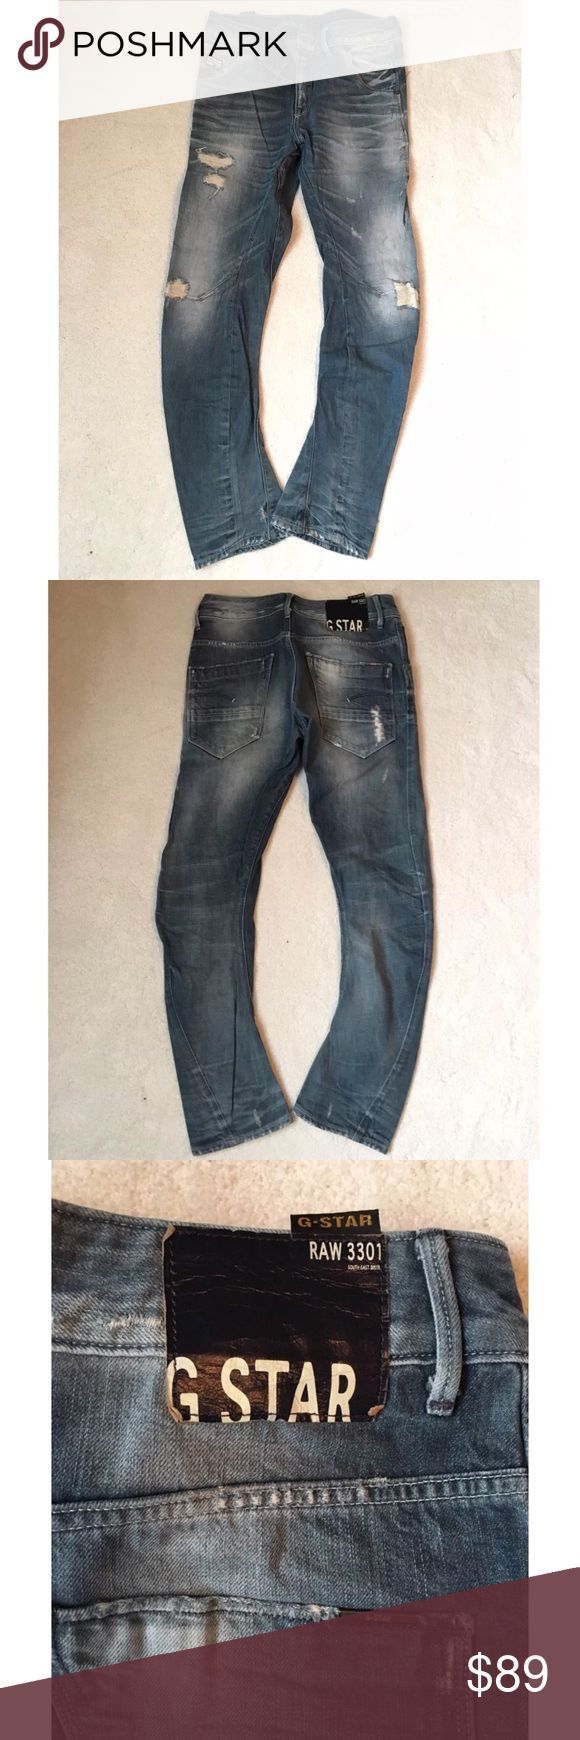 G-Star Raw women jeans, distressed, 3301, blue, 26 Literally wore it less than 5 times. Nothing wrong with it, I can't fit in it anymore... G-Star Jeans